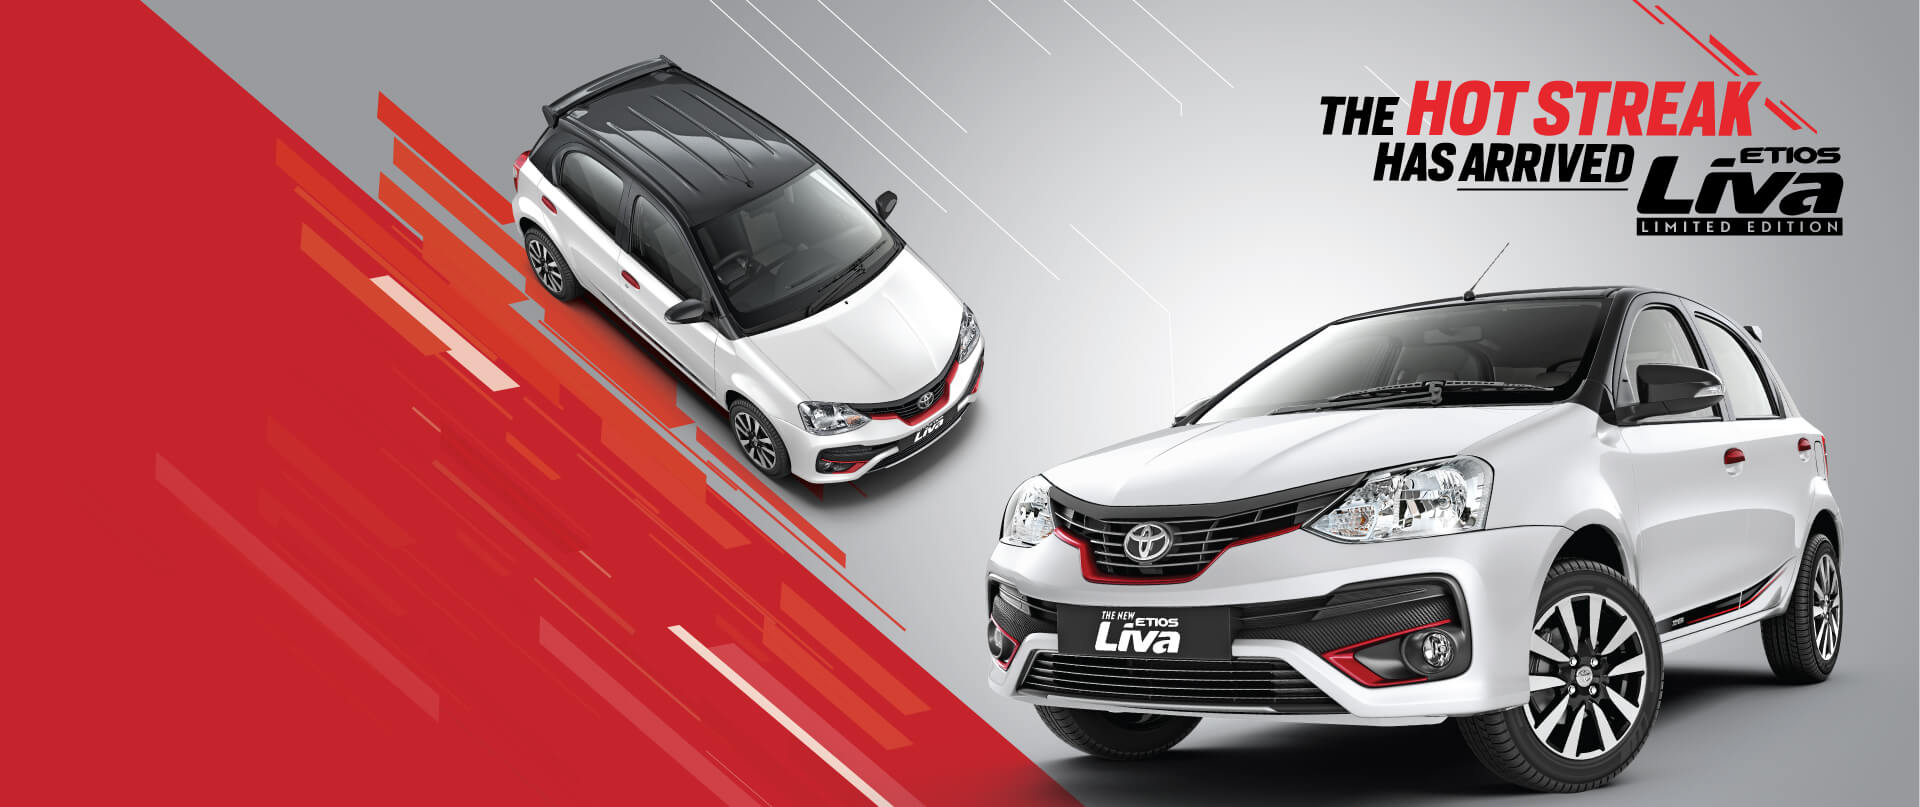 2018 toyota etios liva limited edition photo gallery carwale.